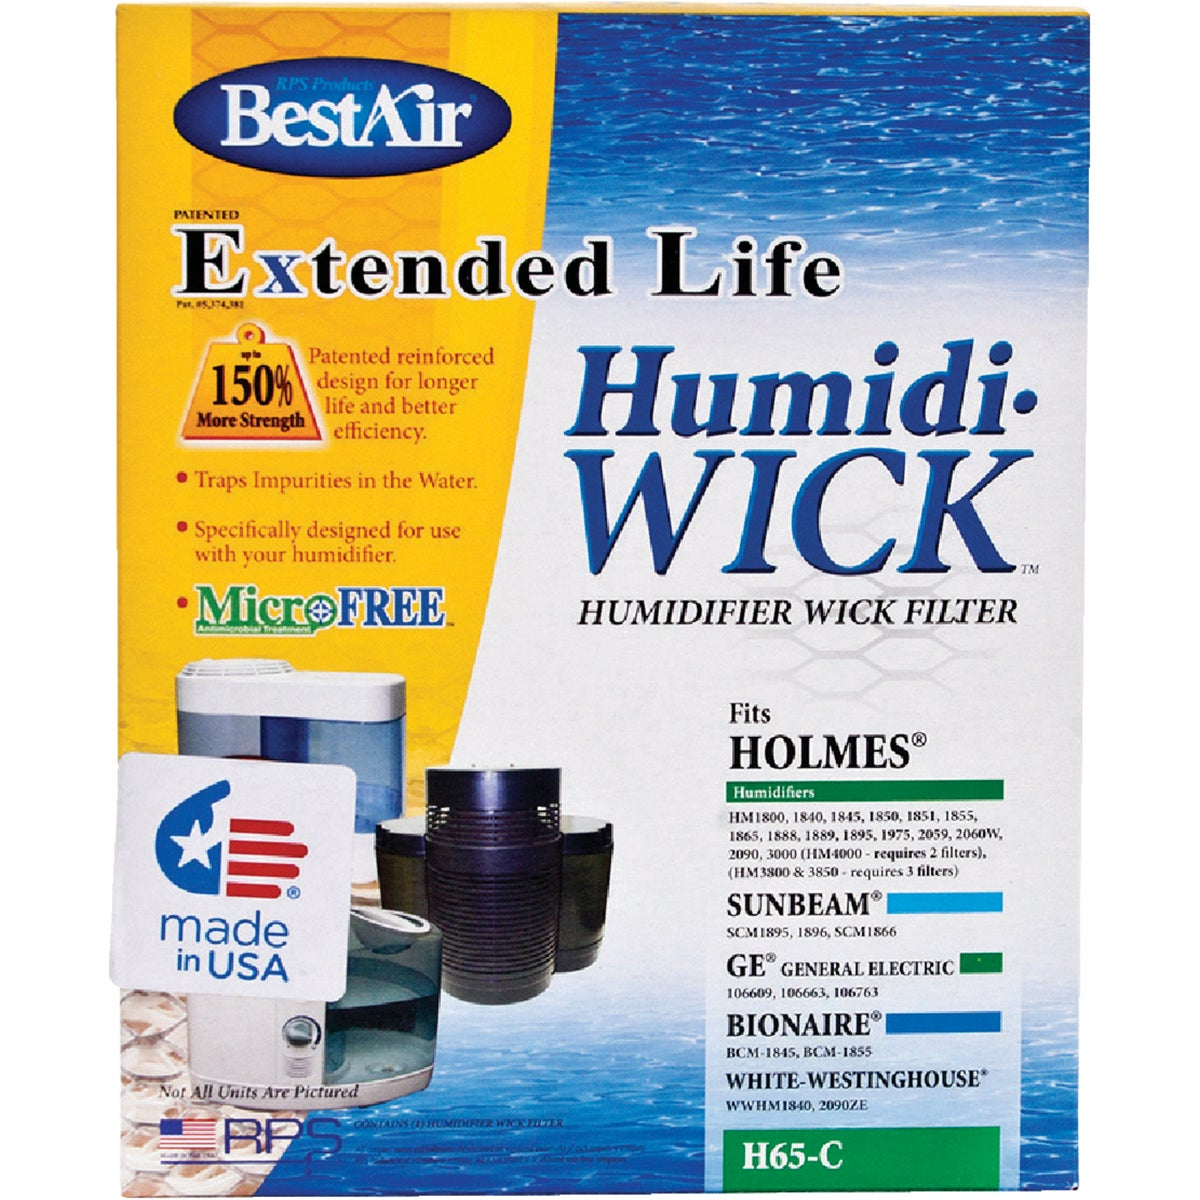 HUMIDIFIER WICK FILTER - H65-C by Rps Products Inc